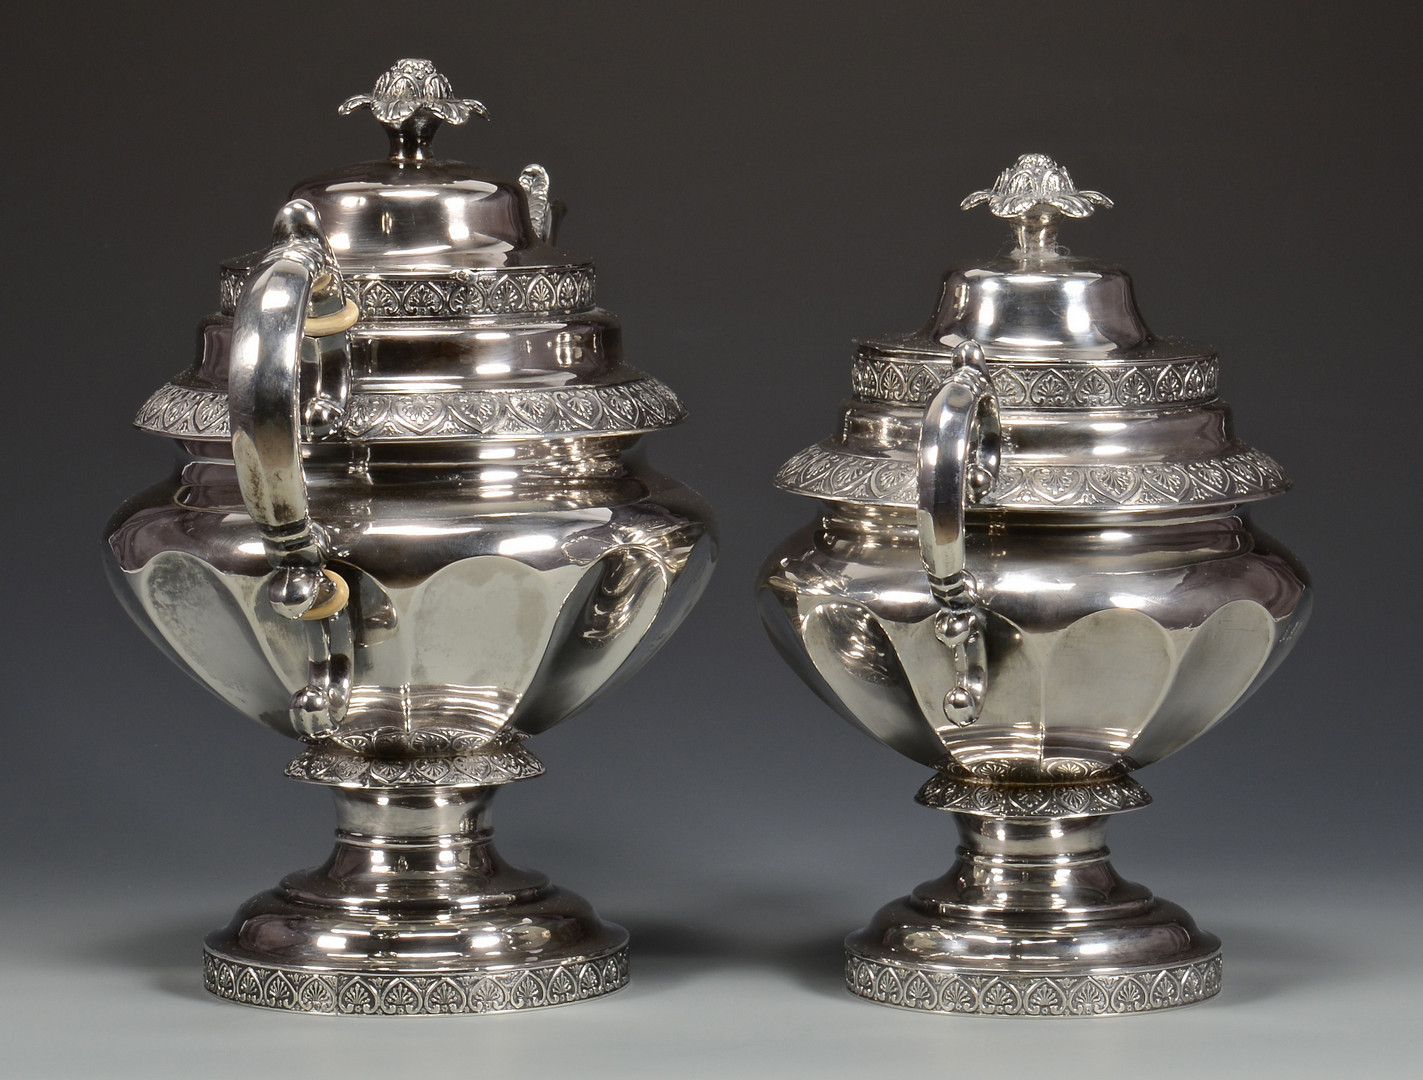 Lot 29: NY Coin Silver Tea Service